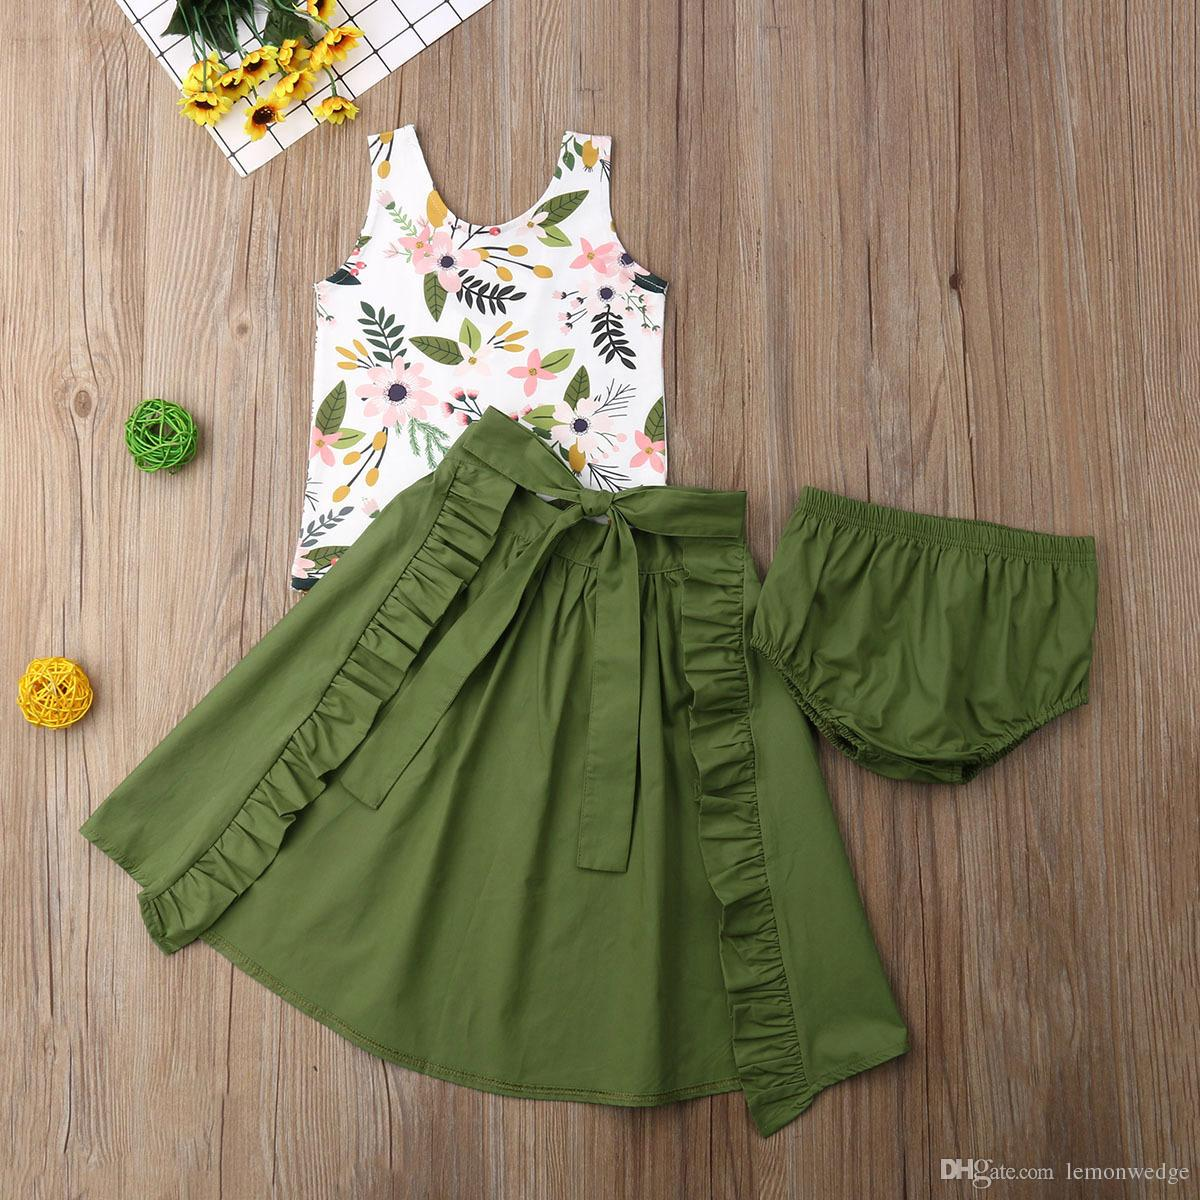 3PCS Baby Girl Clothes Set Sleeveless T-shirt Tops Skirts Shorts Bowknot Summer Party Clothes Set Child